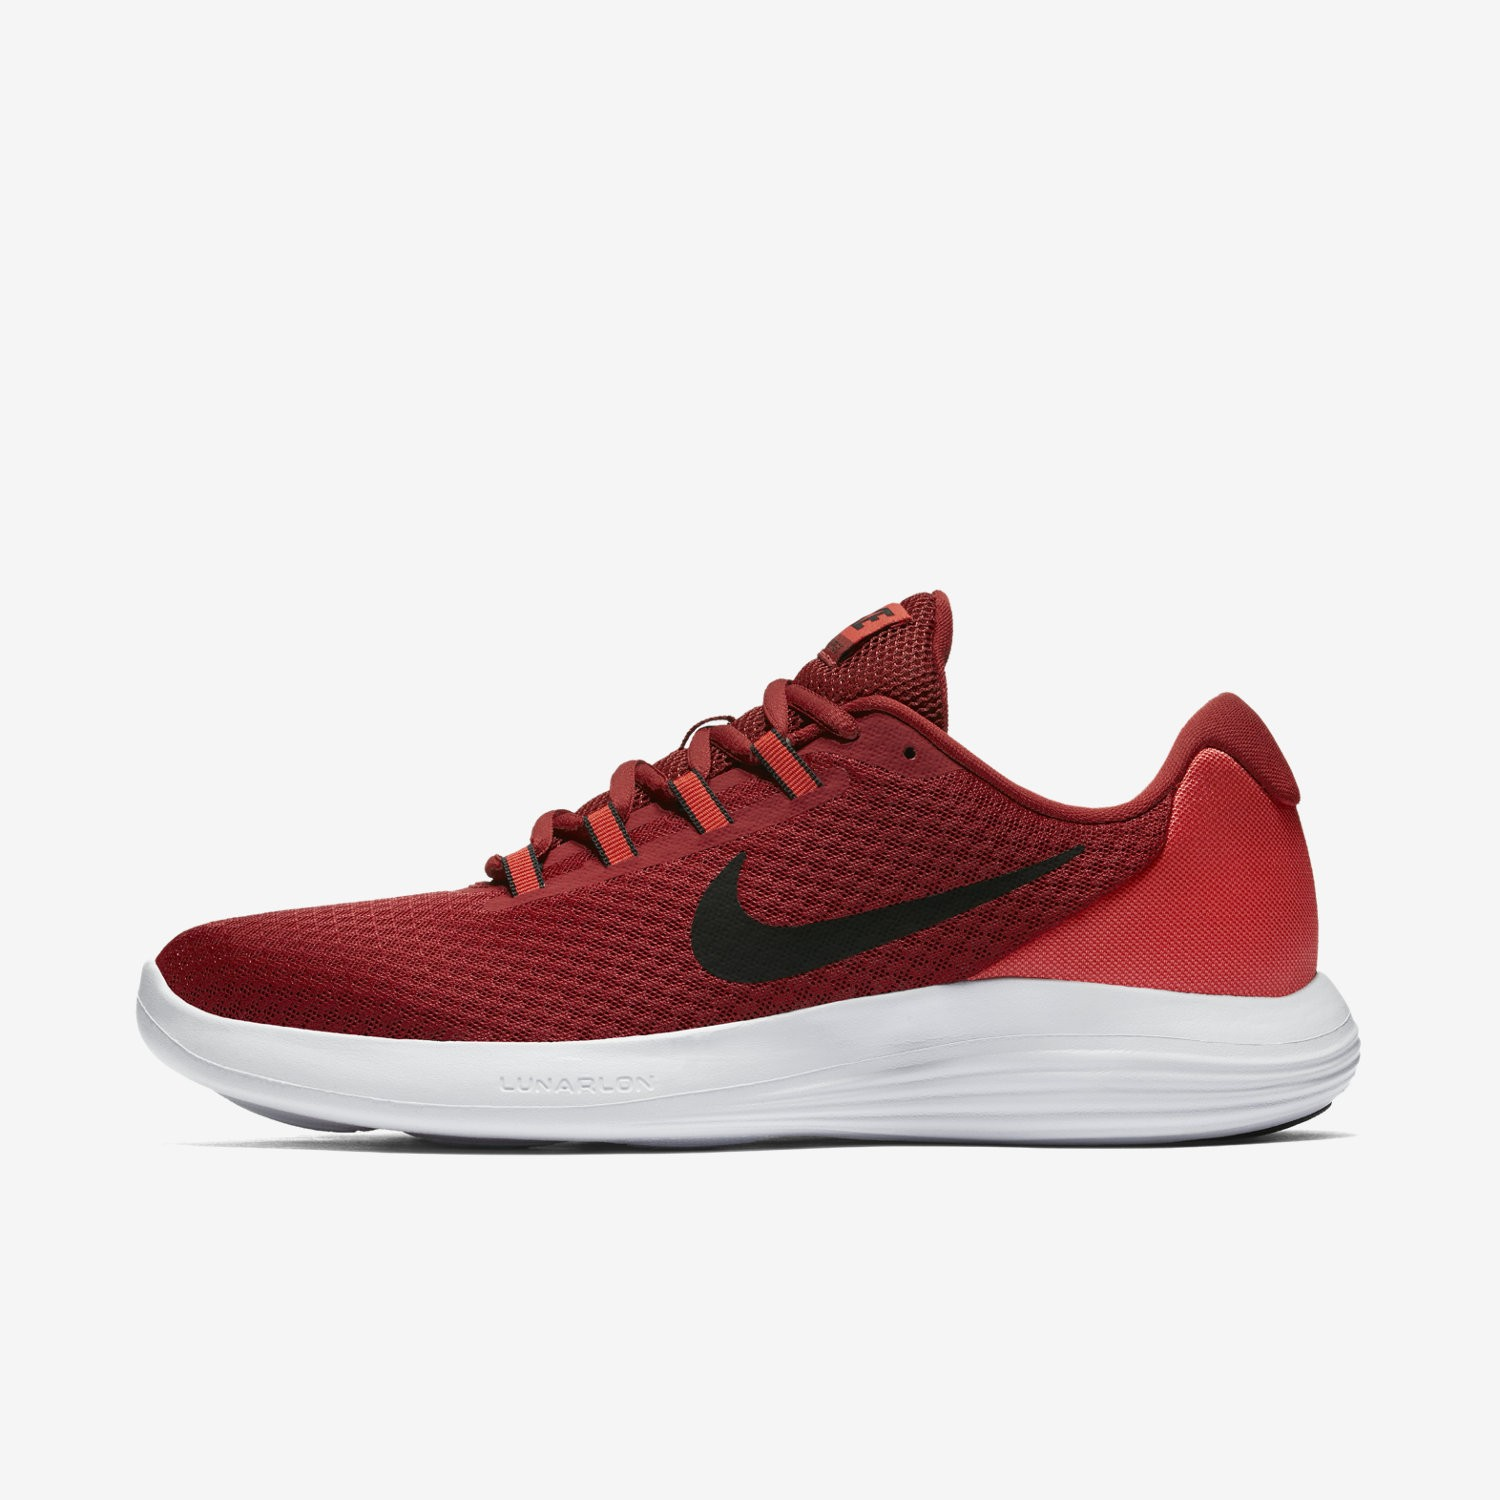 Chaussure de running nike lunarconverge pour homme